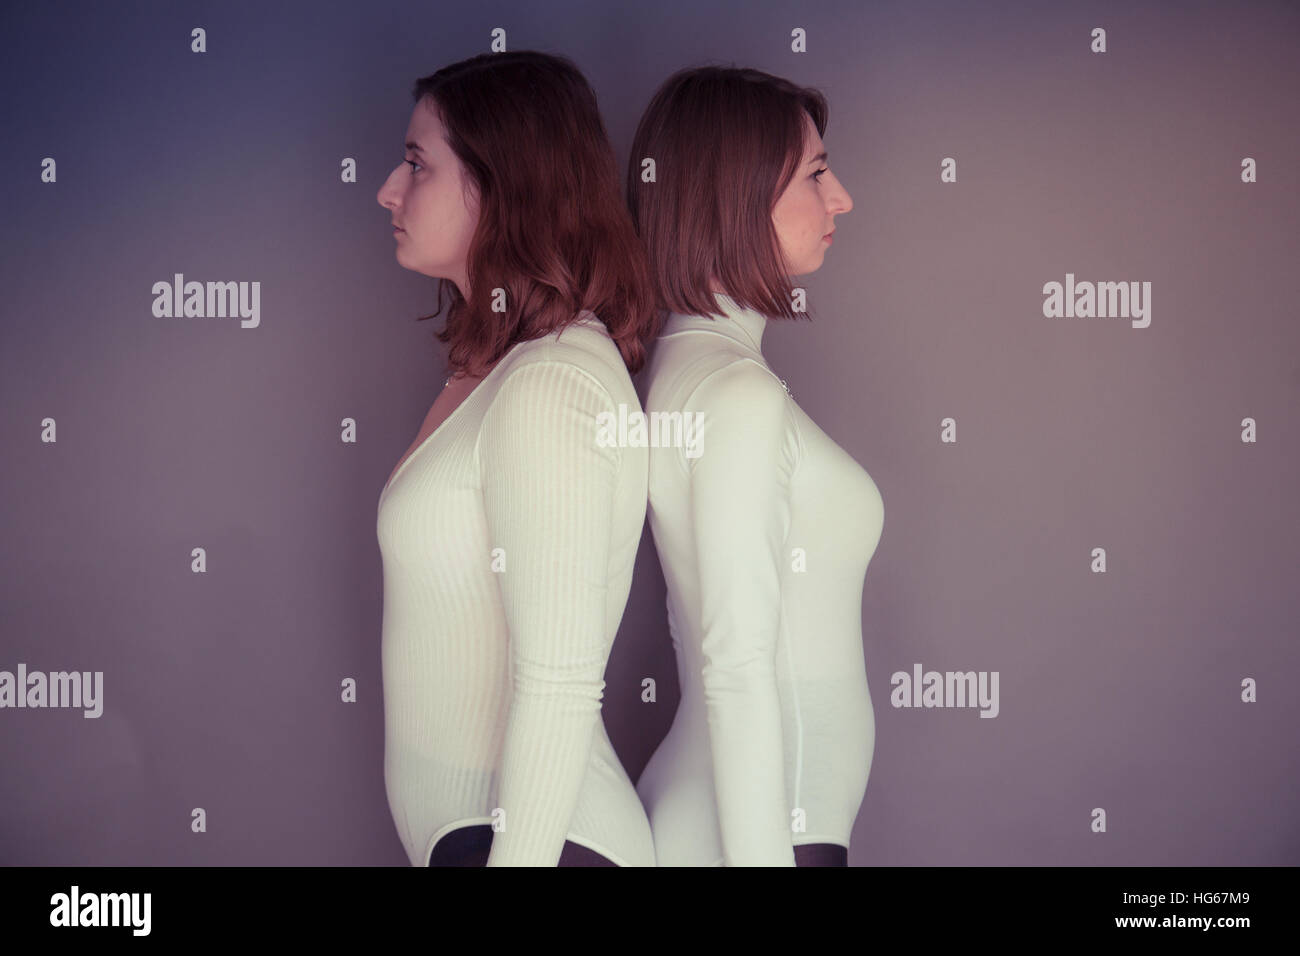 Doppelganger / Alter-ego themed photoshoot: two young women girls wearing matching clothes stood standing together - Stock Image